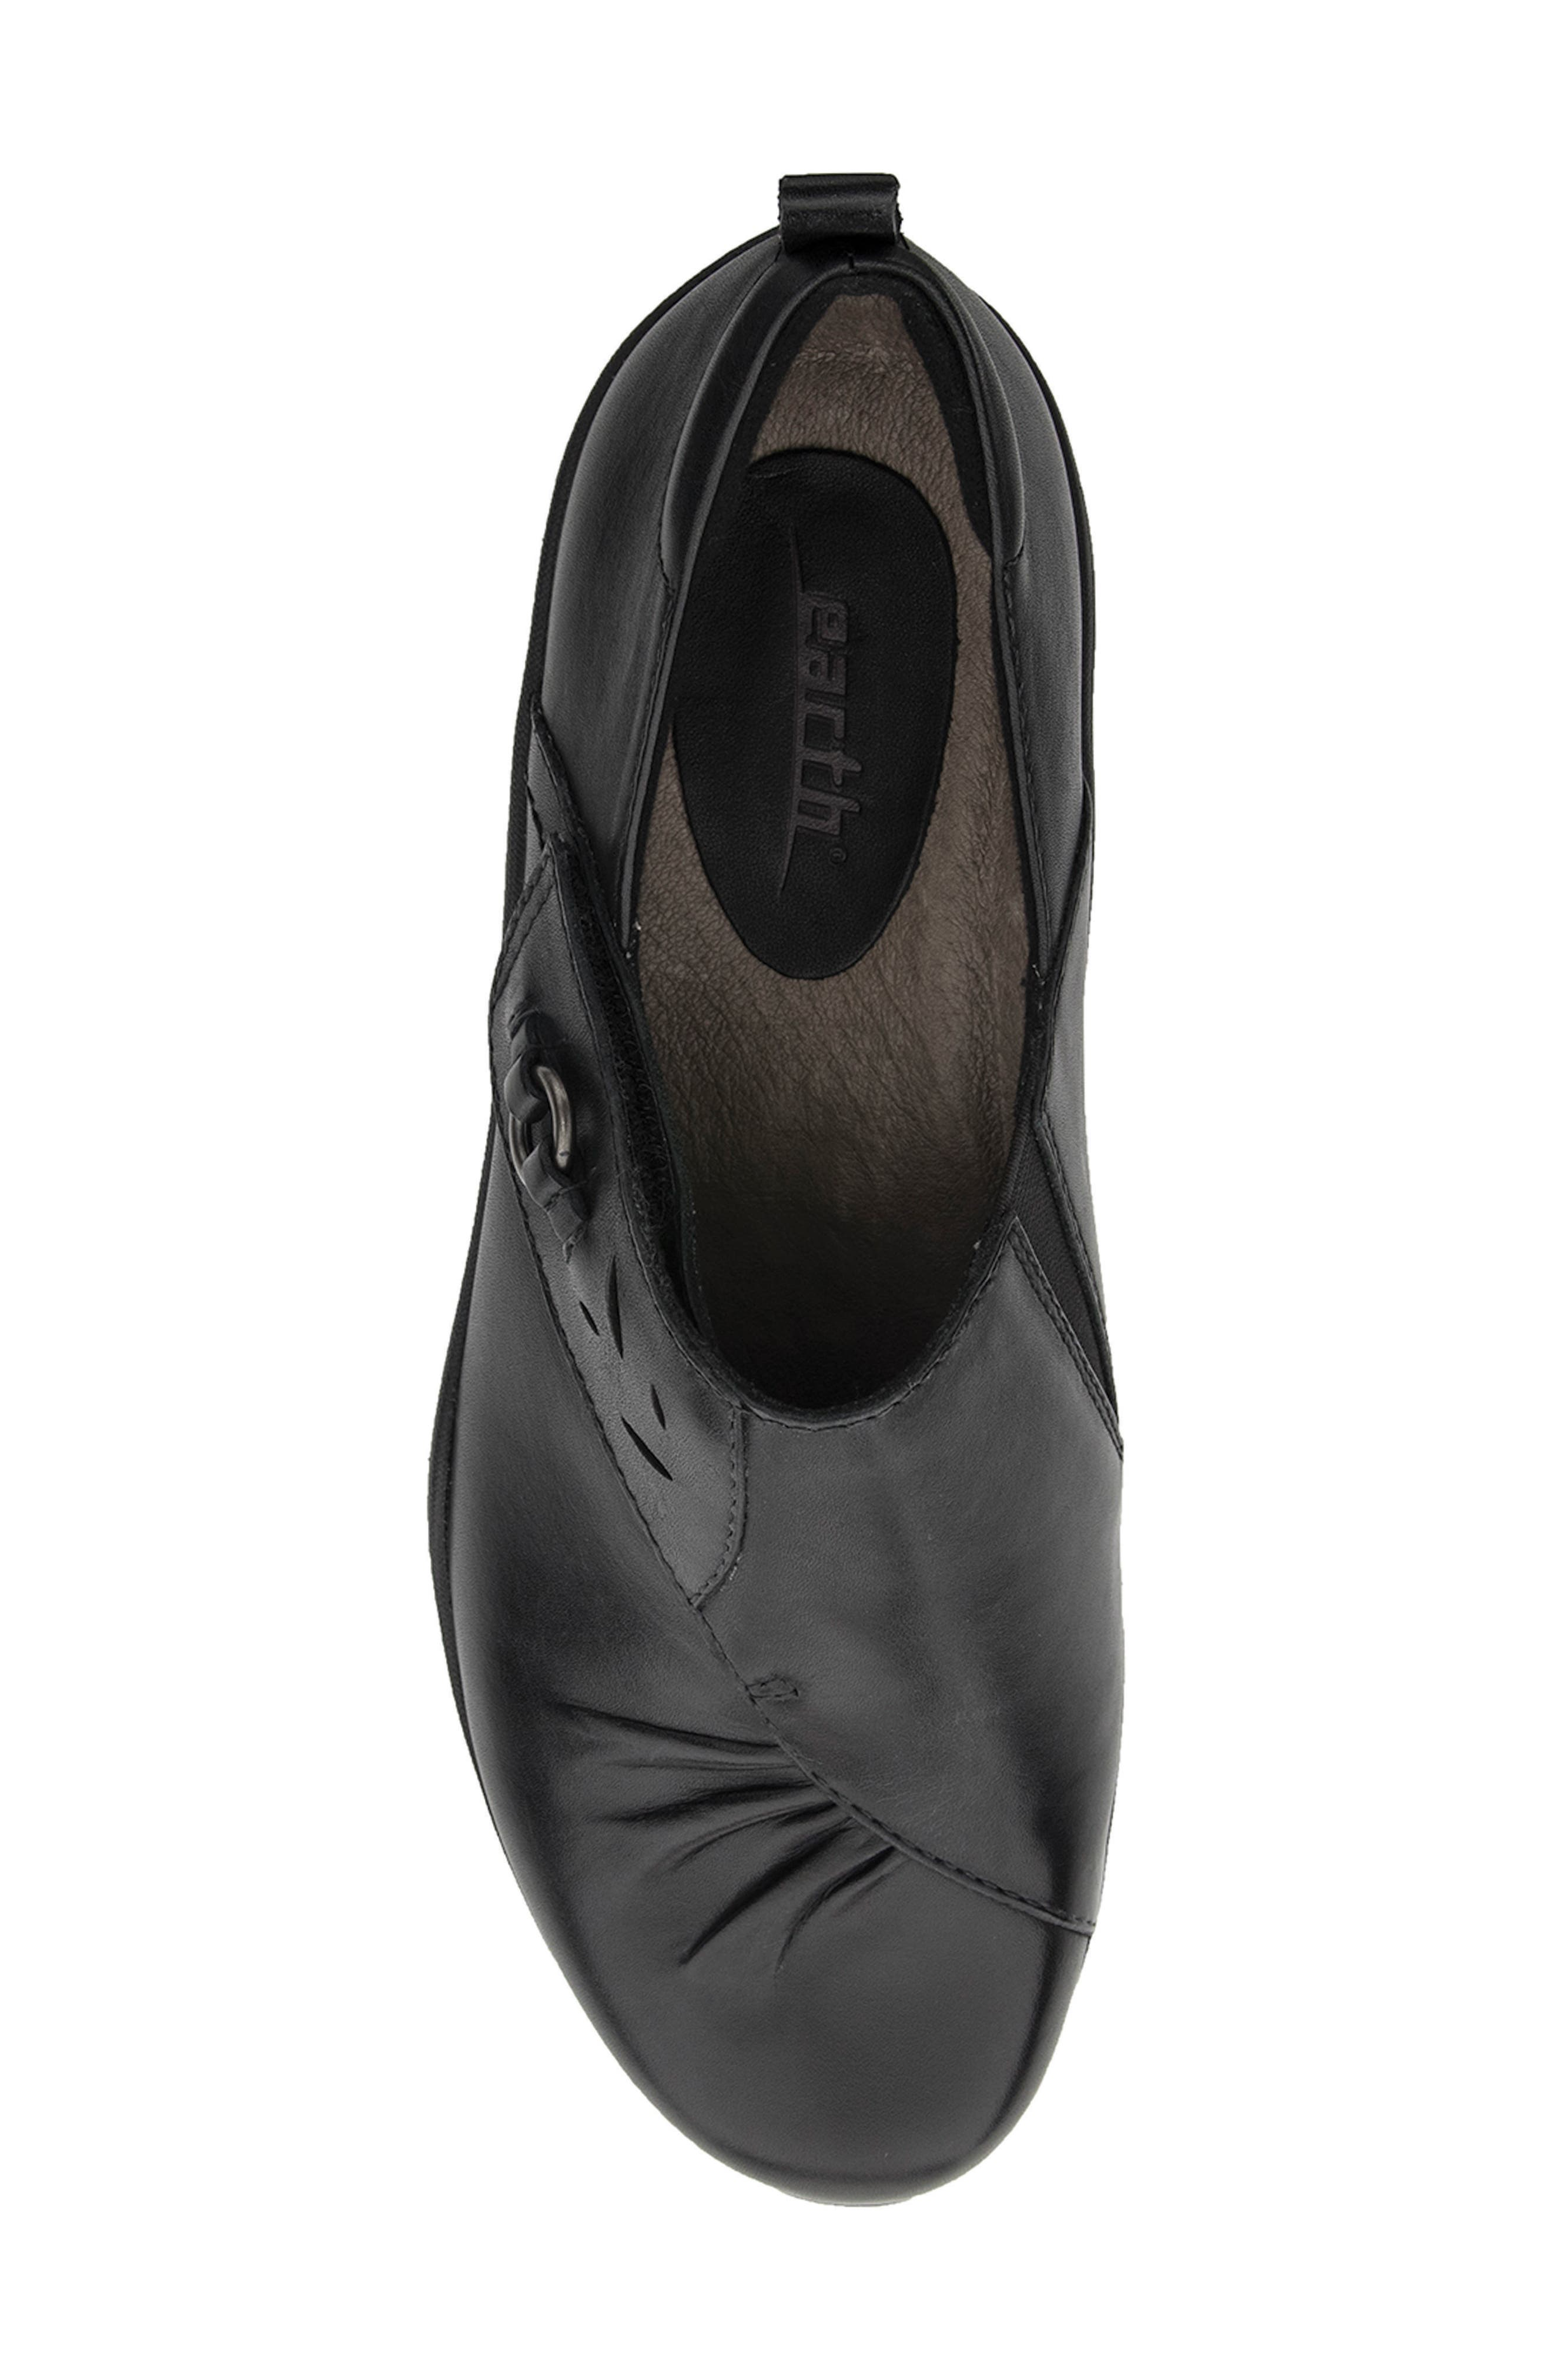 Amity Loafer,                             Alternate thumbnail 5, color,                             012